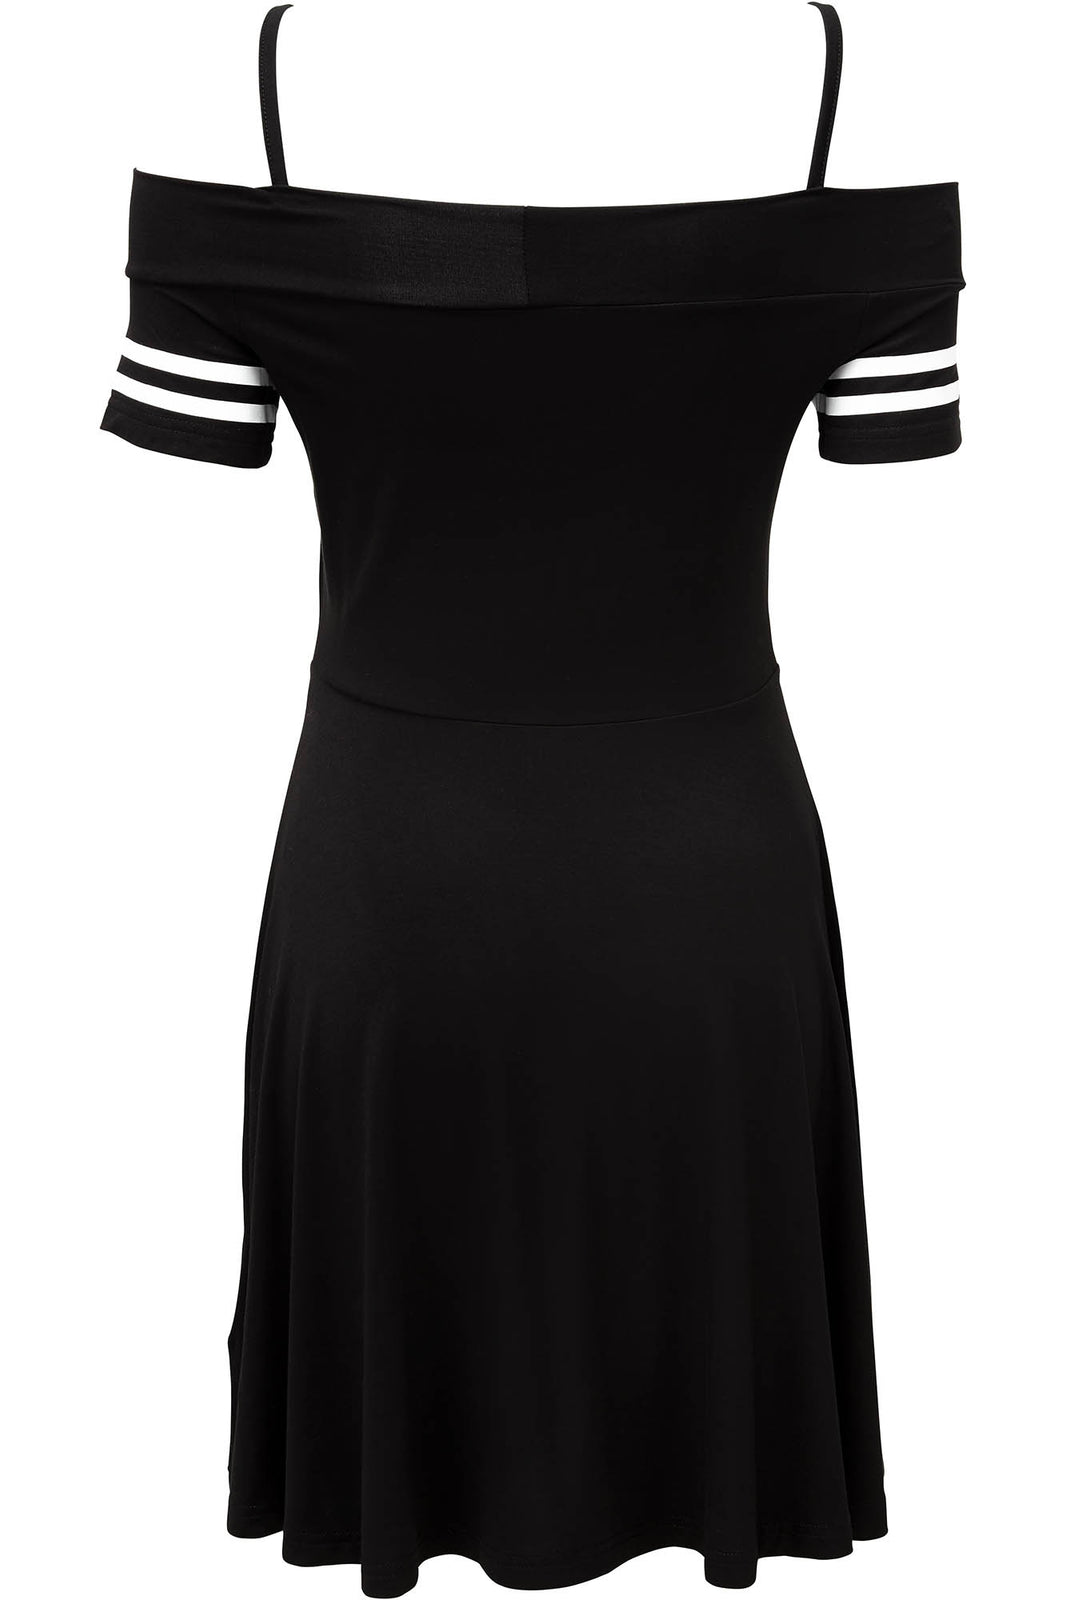 Expectations Bardot Dress [B]